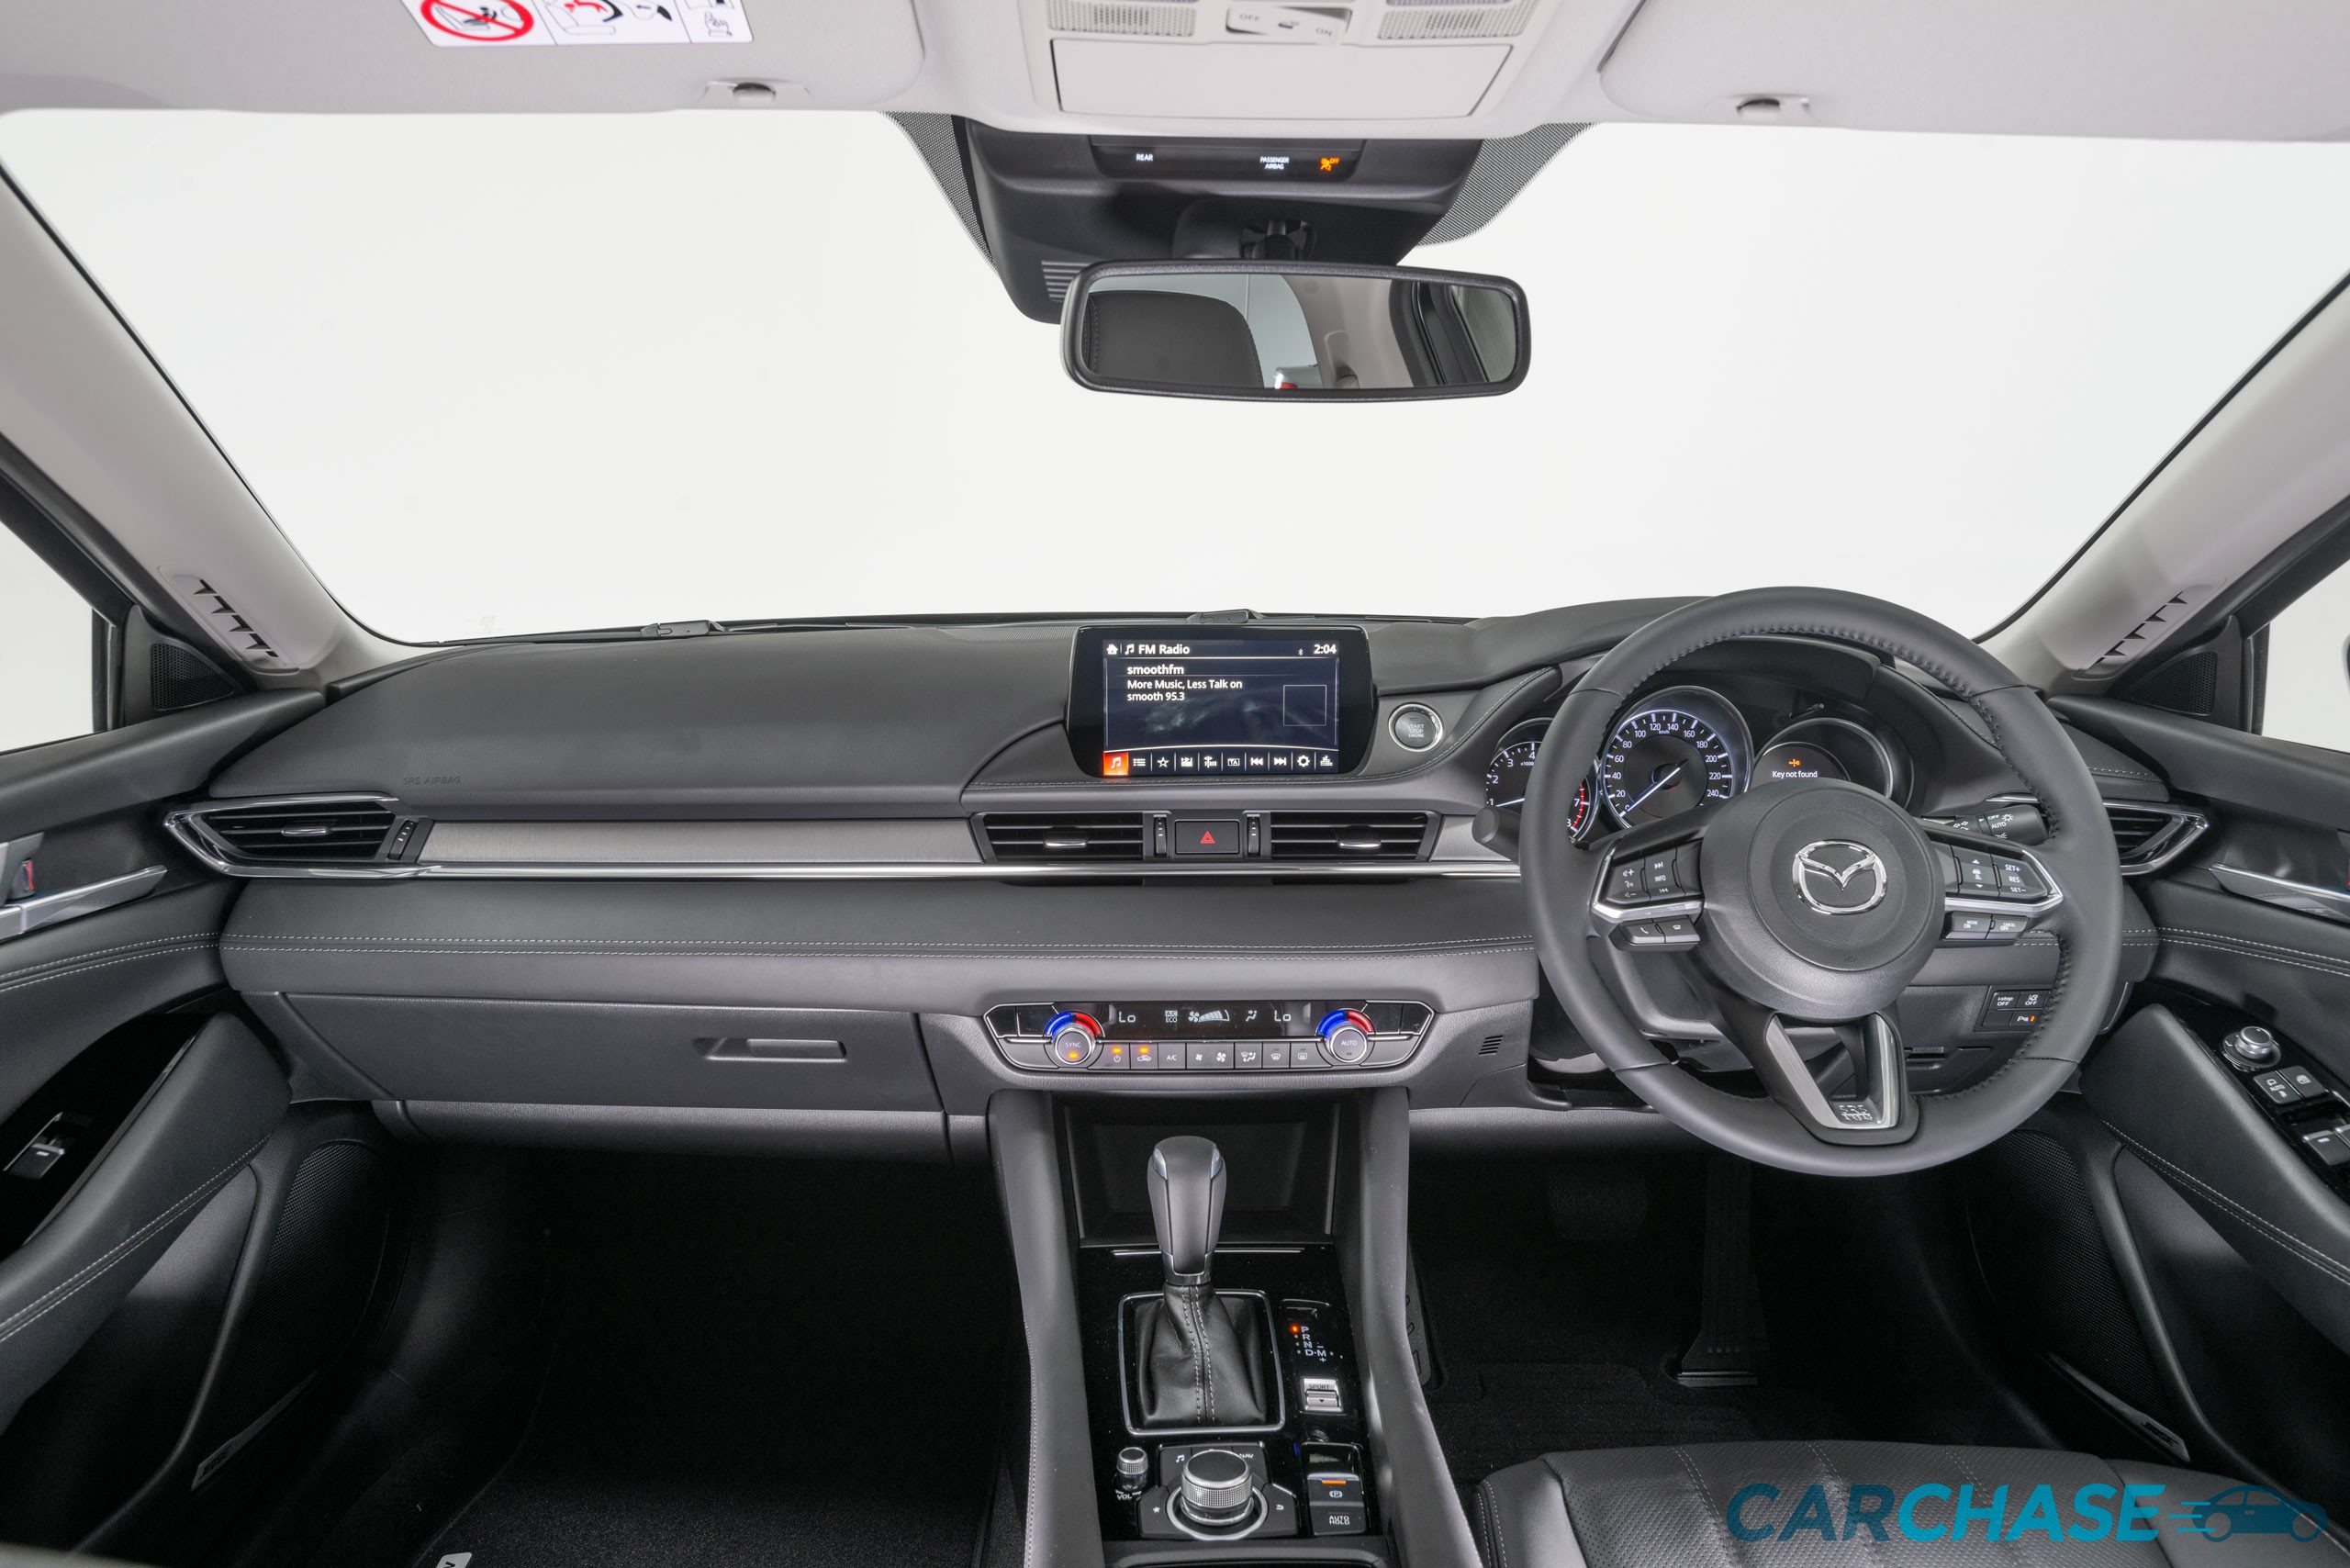 Image of dashboard profile of 2019 Mazda 6 Touring